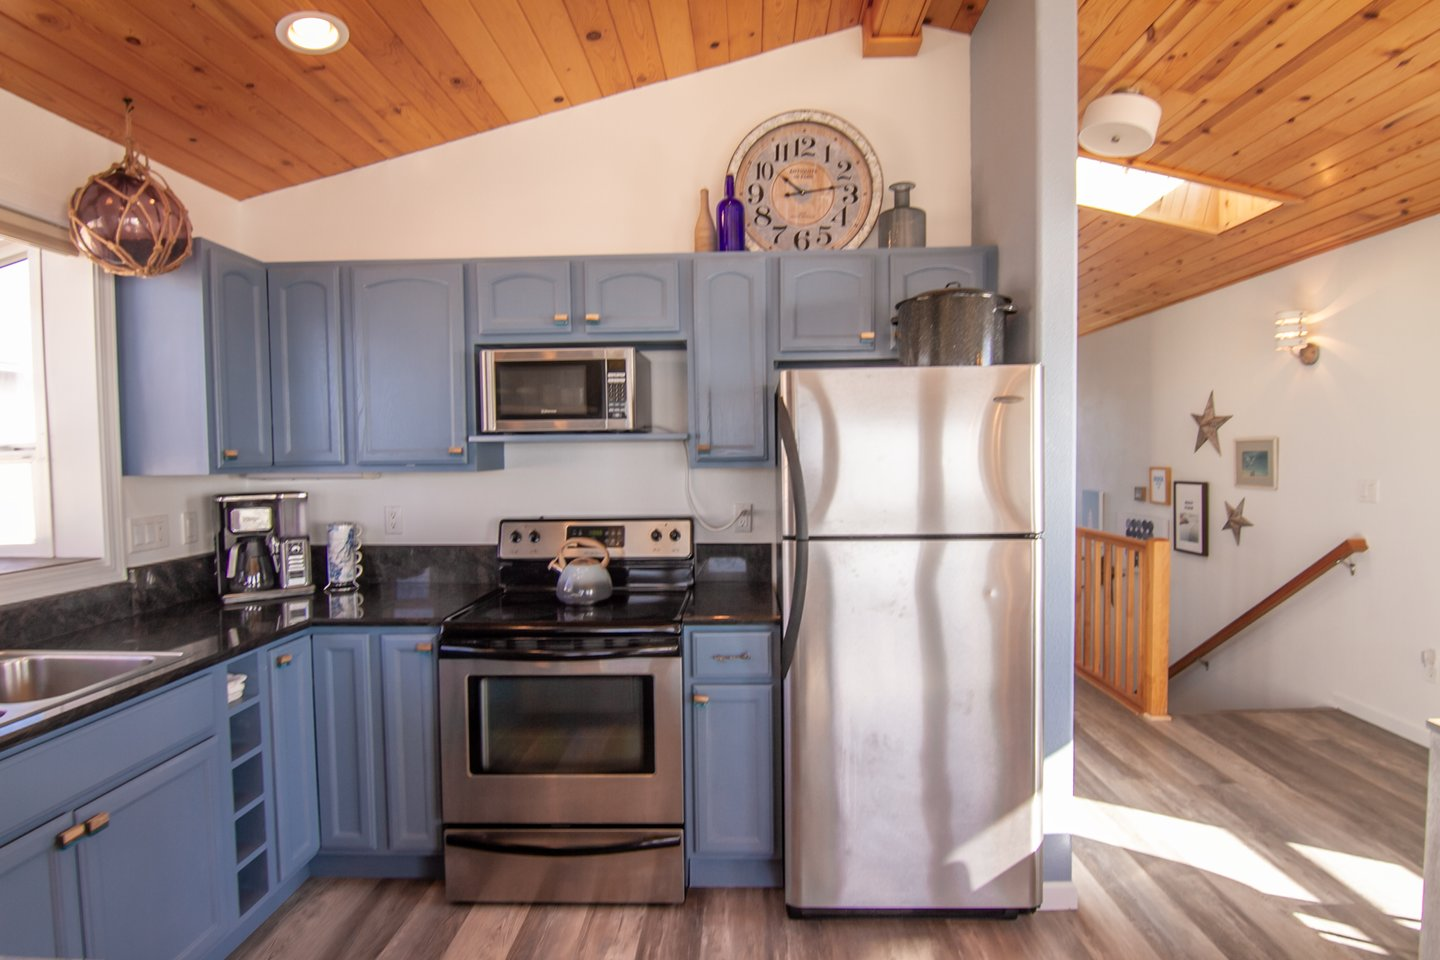 Stainless steel appliances are perfect for the family chef.